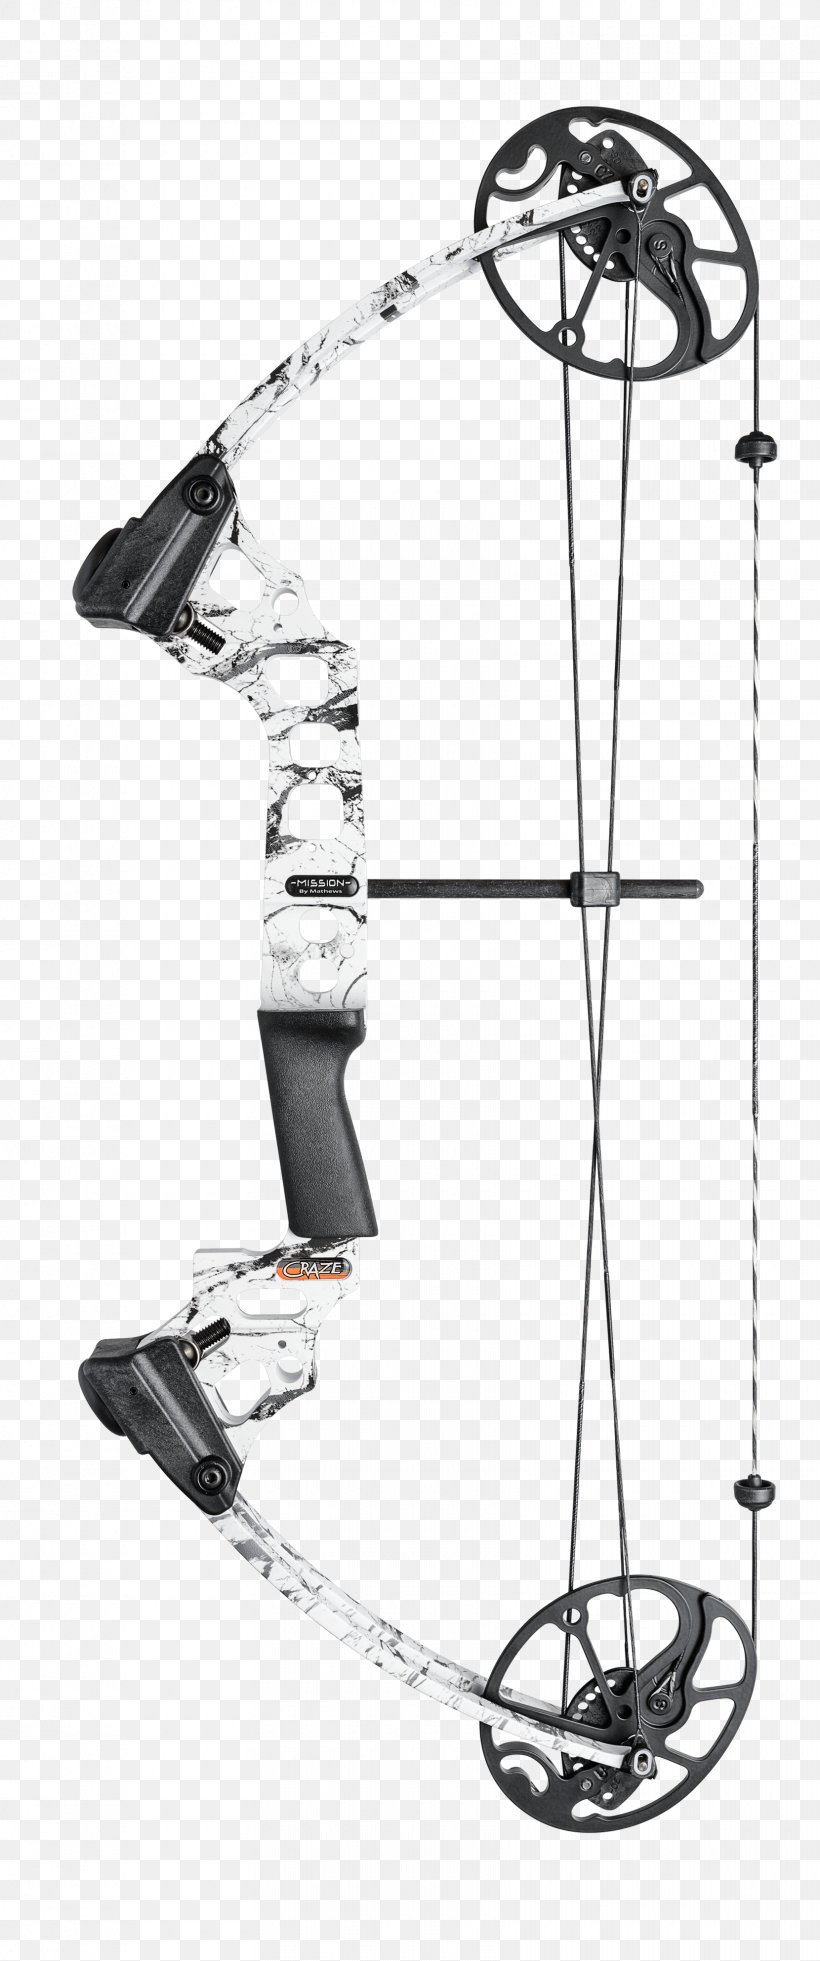 Bow And Arrow Archery Compound Bows Bowhunting, PNG, 1660x3970px, Bow And Arrow, Archery, Black And White, Bowhunting, Cam Download Free